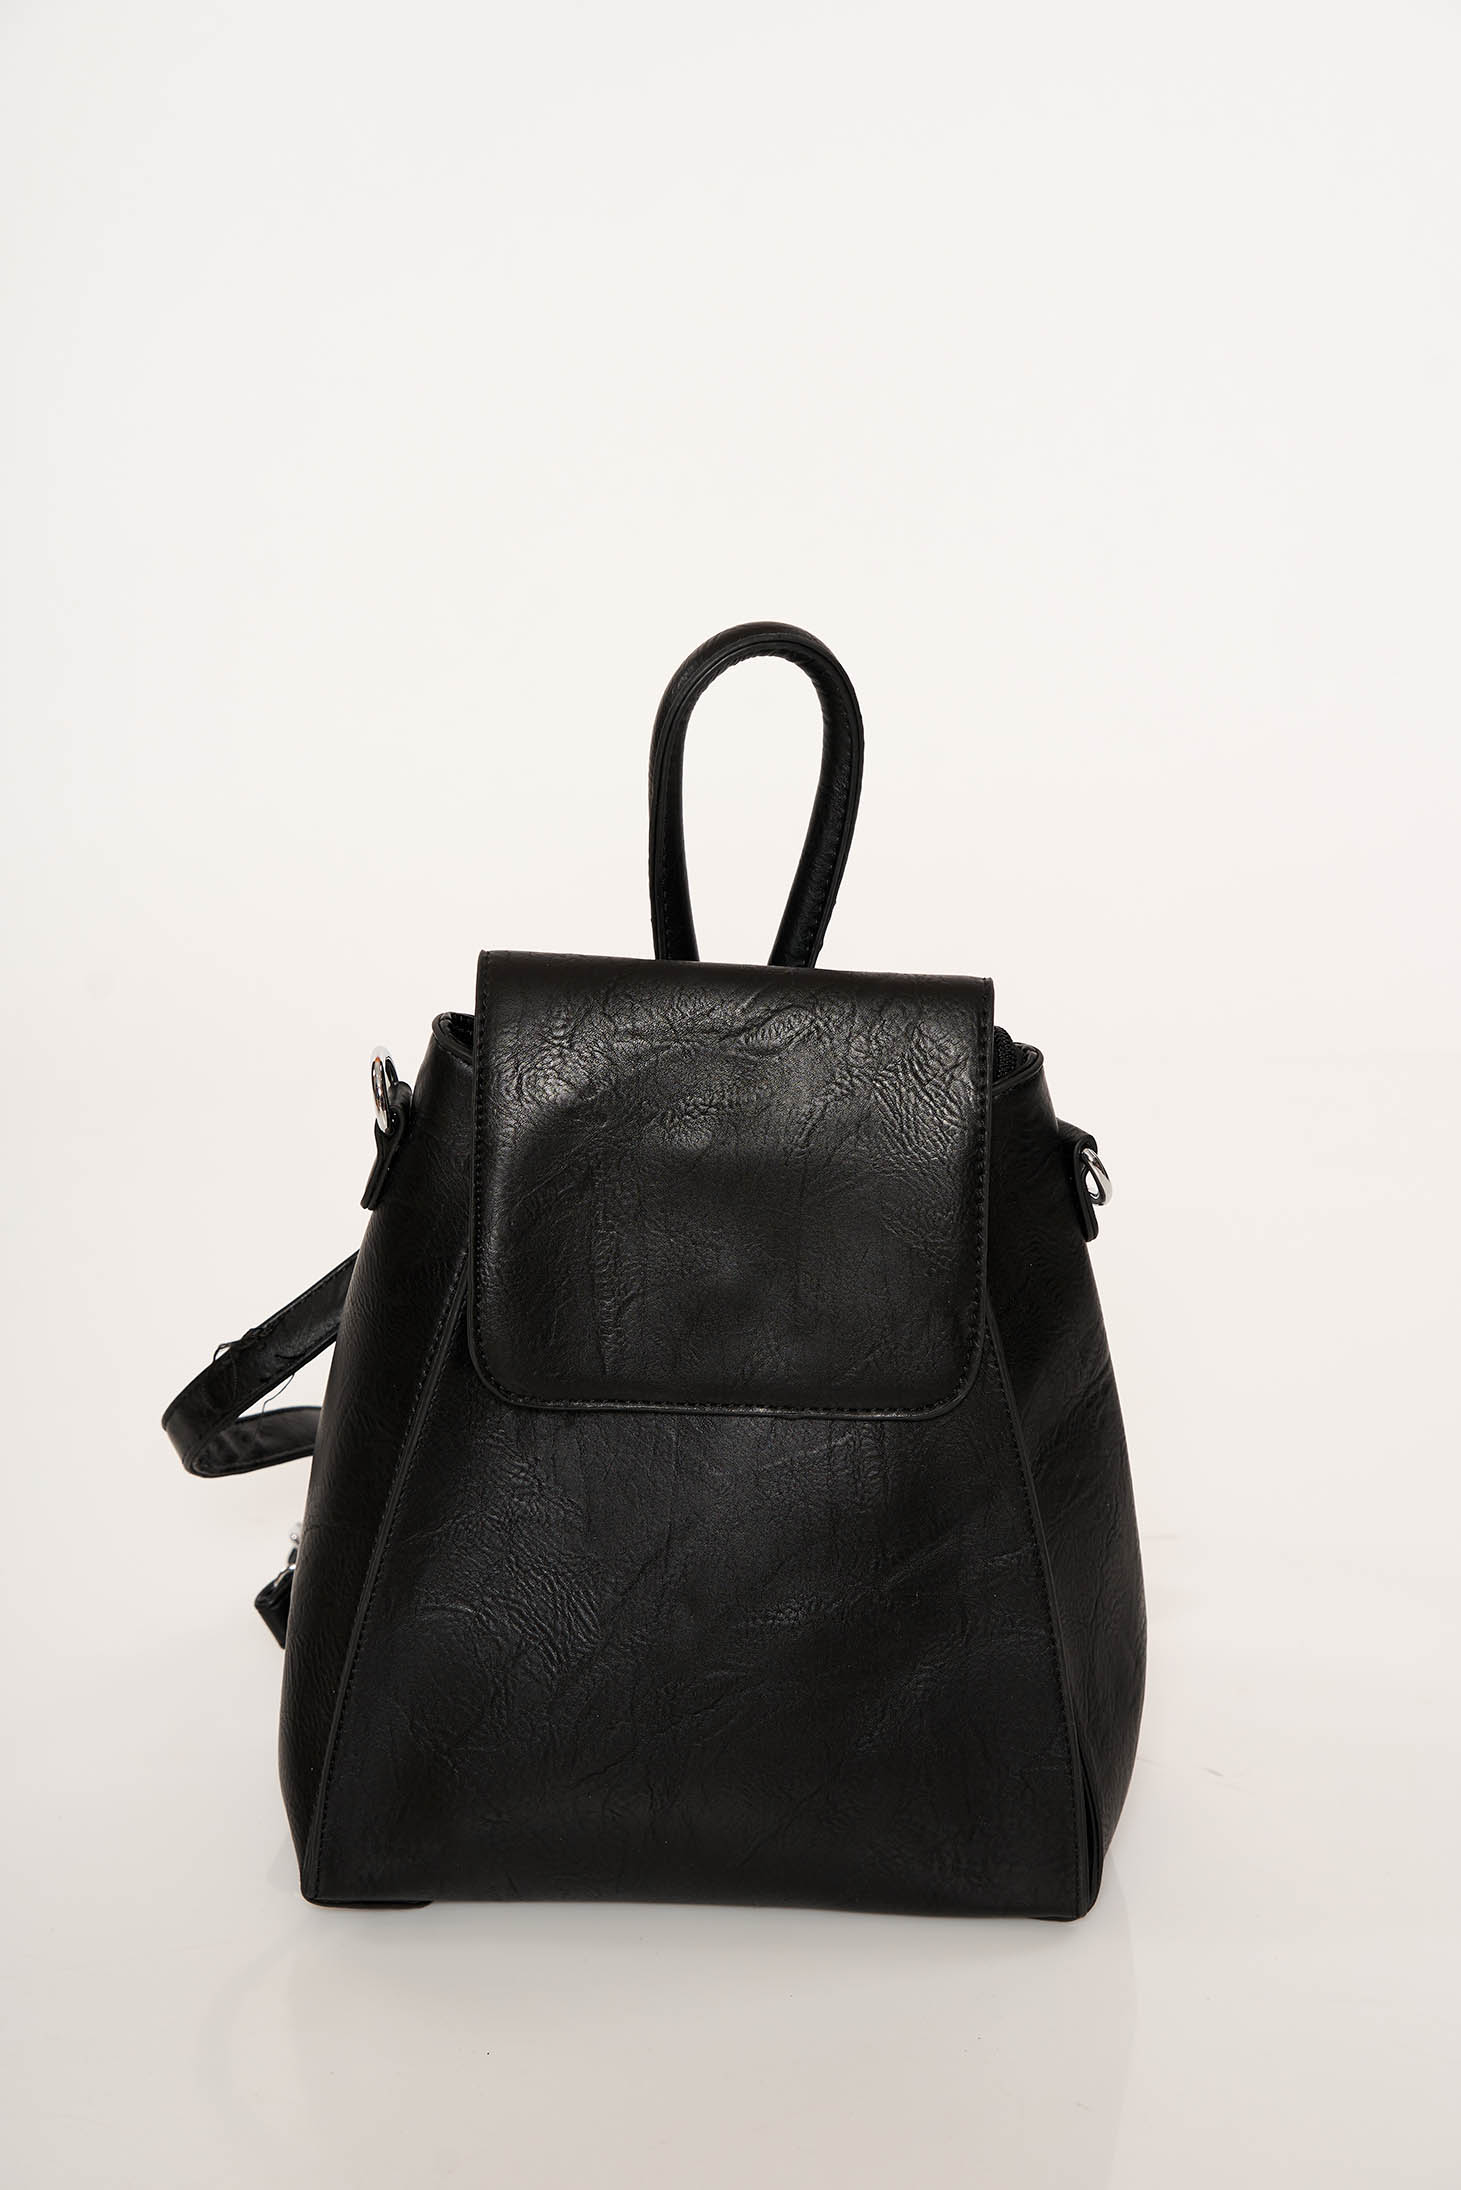 Black backpacks casual from ecological leather adjustable straps